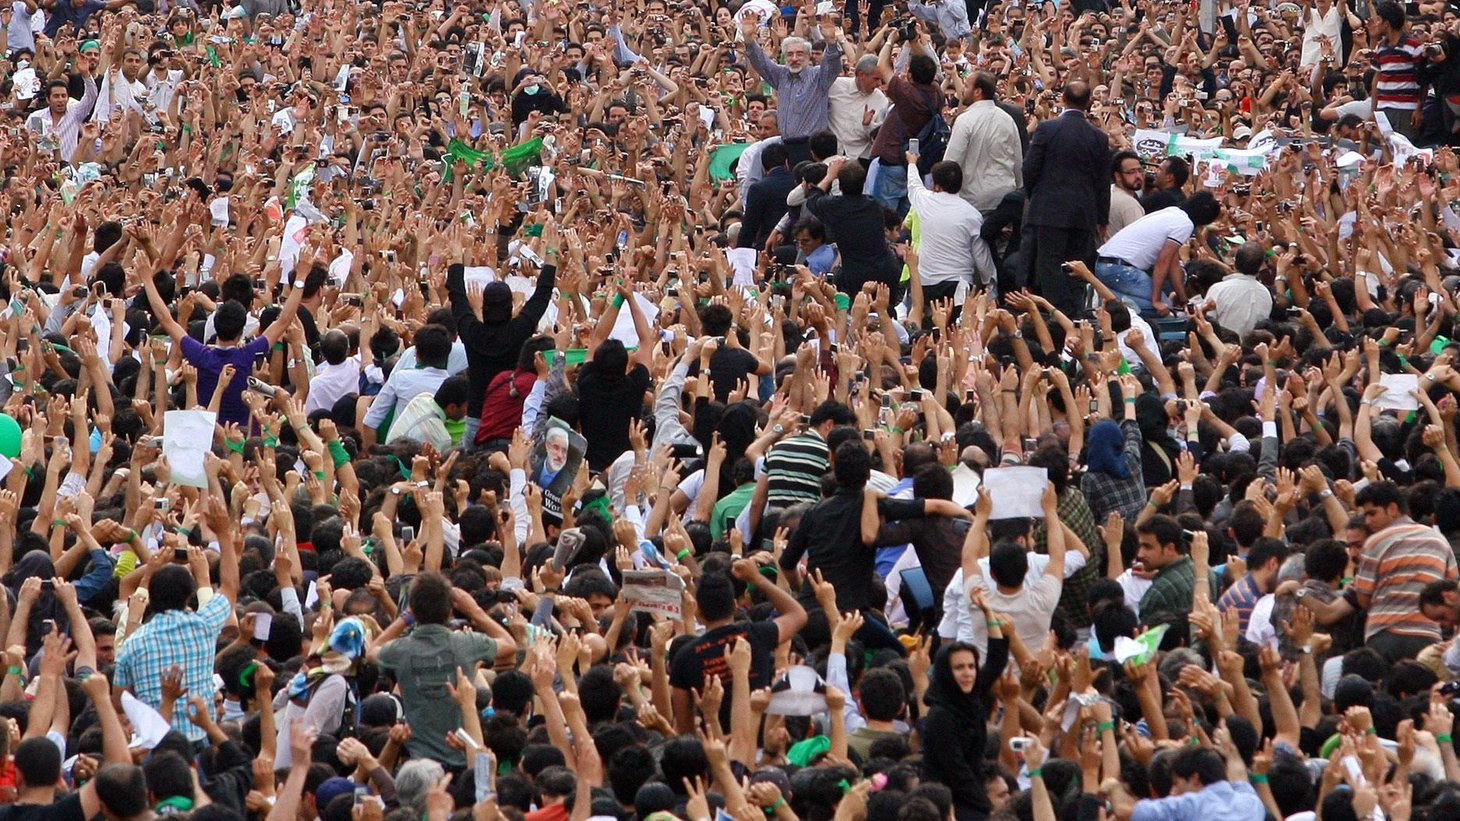 Demonstrations for and against the government continued today in Iran. We hear about the most serious challenge to the central government since the Islamic revolution in 1979. Also, South Korea's President is in lockstep with President Obama on North Korea, and Western states are challenging federal authority on education, civil rights, land use and gun control.